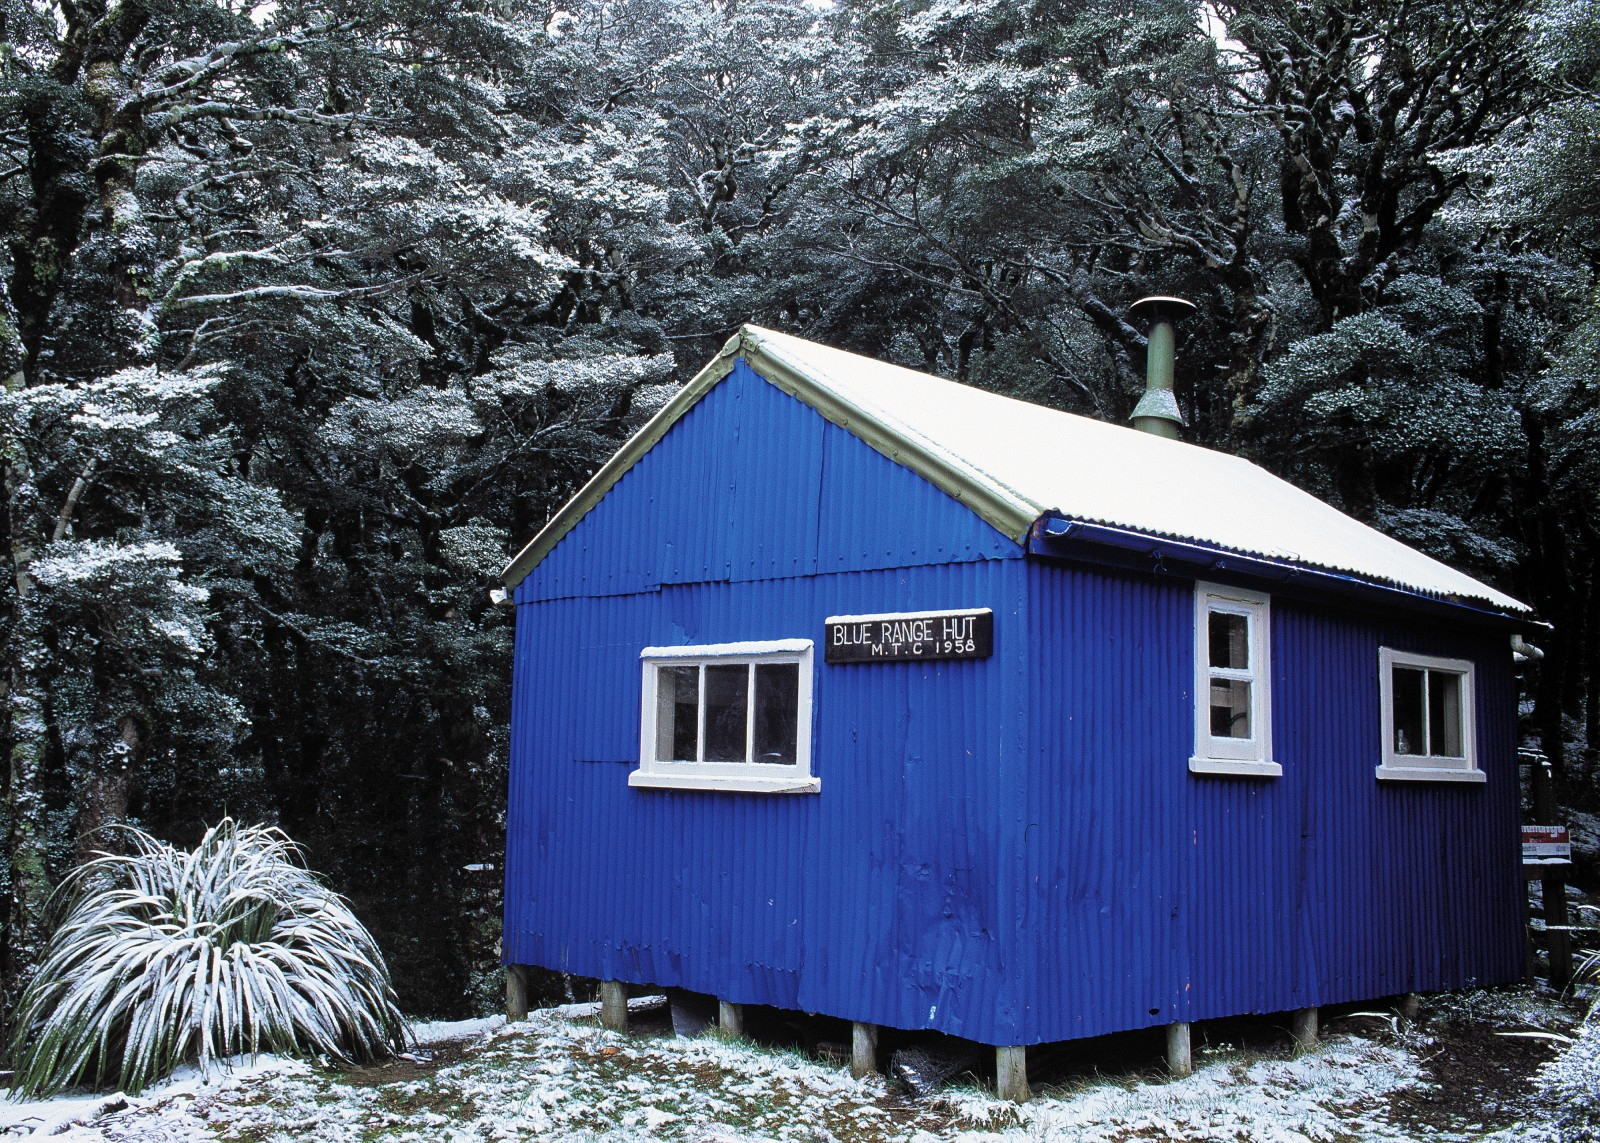 Blue Range Hut, Tararua Forest Park.